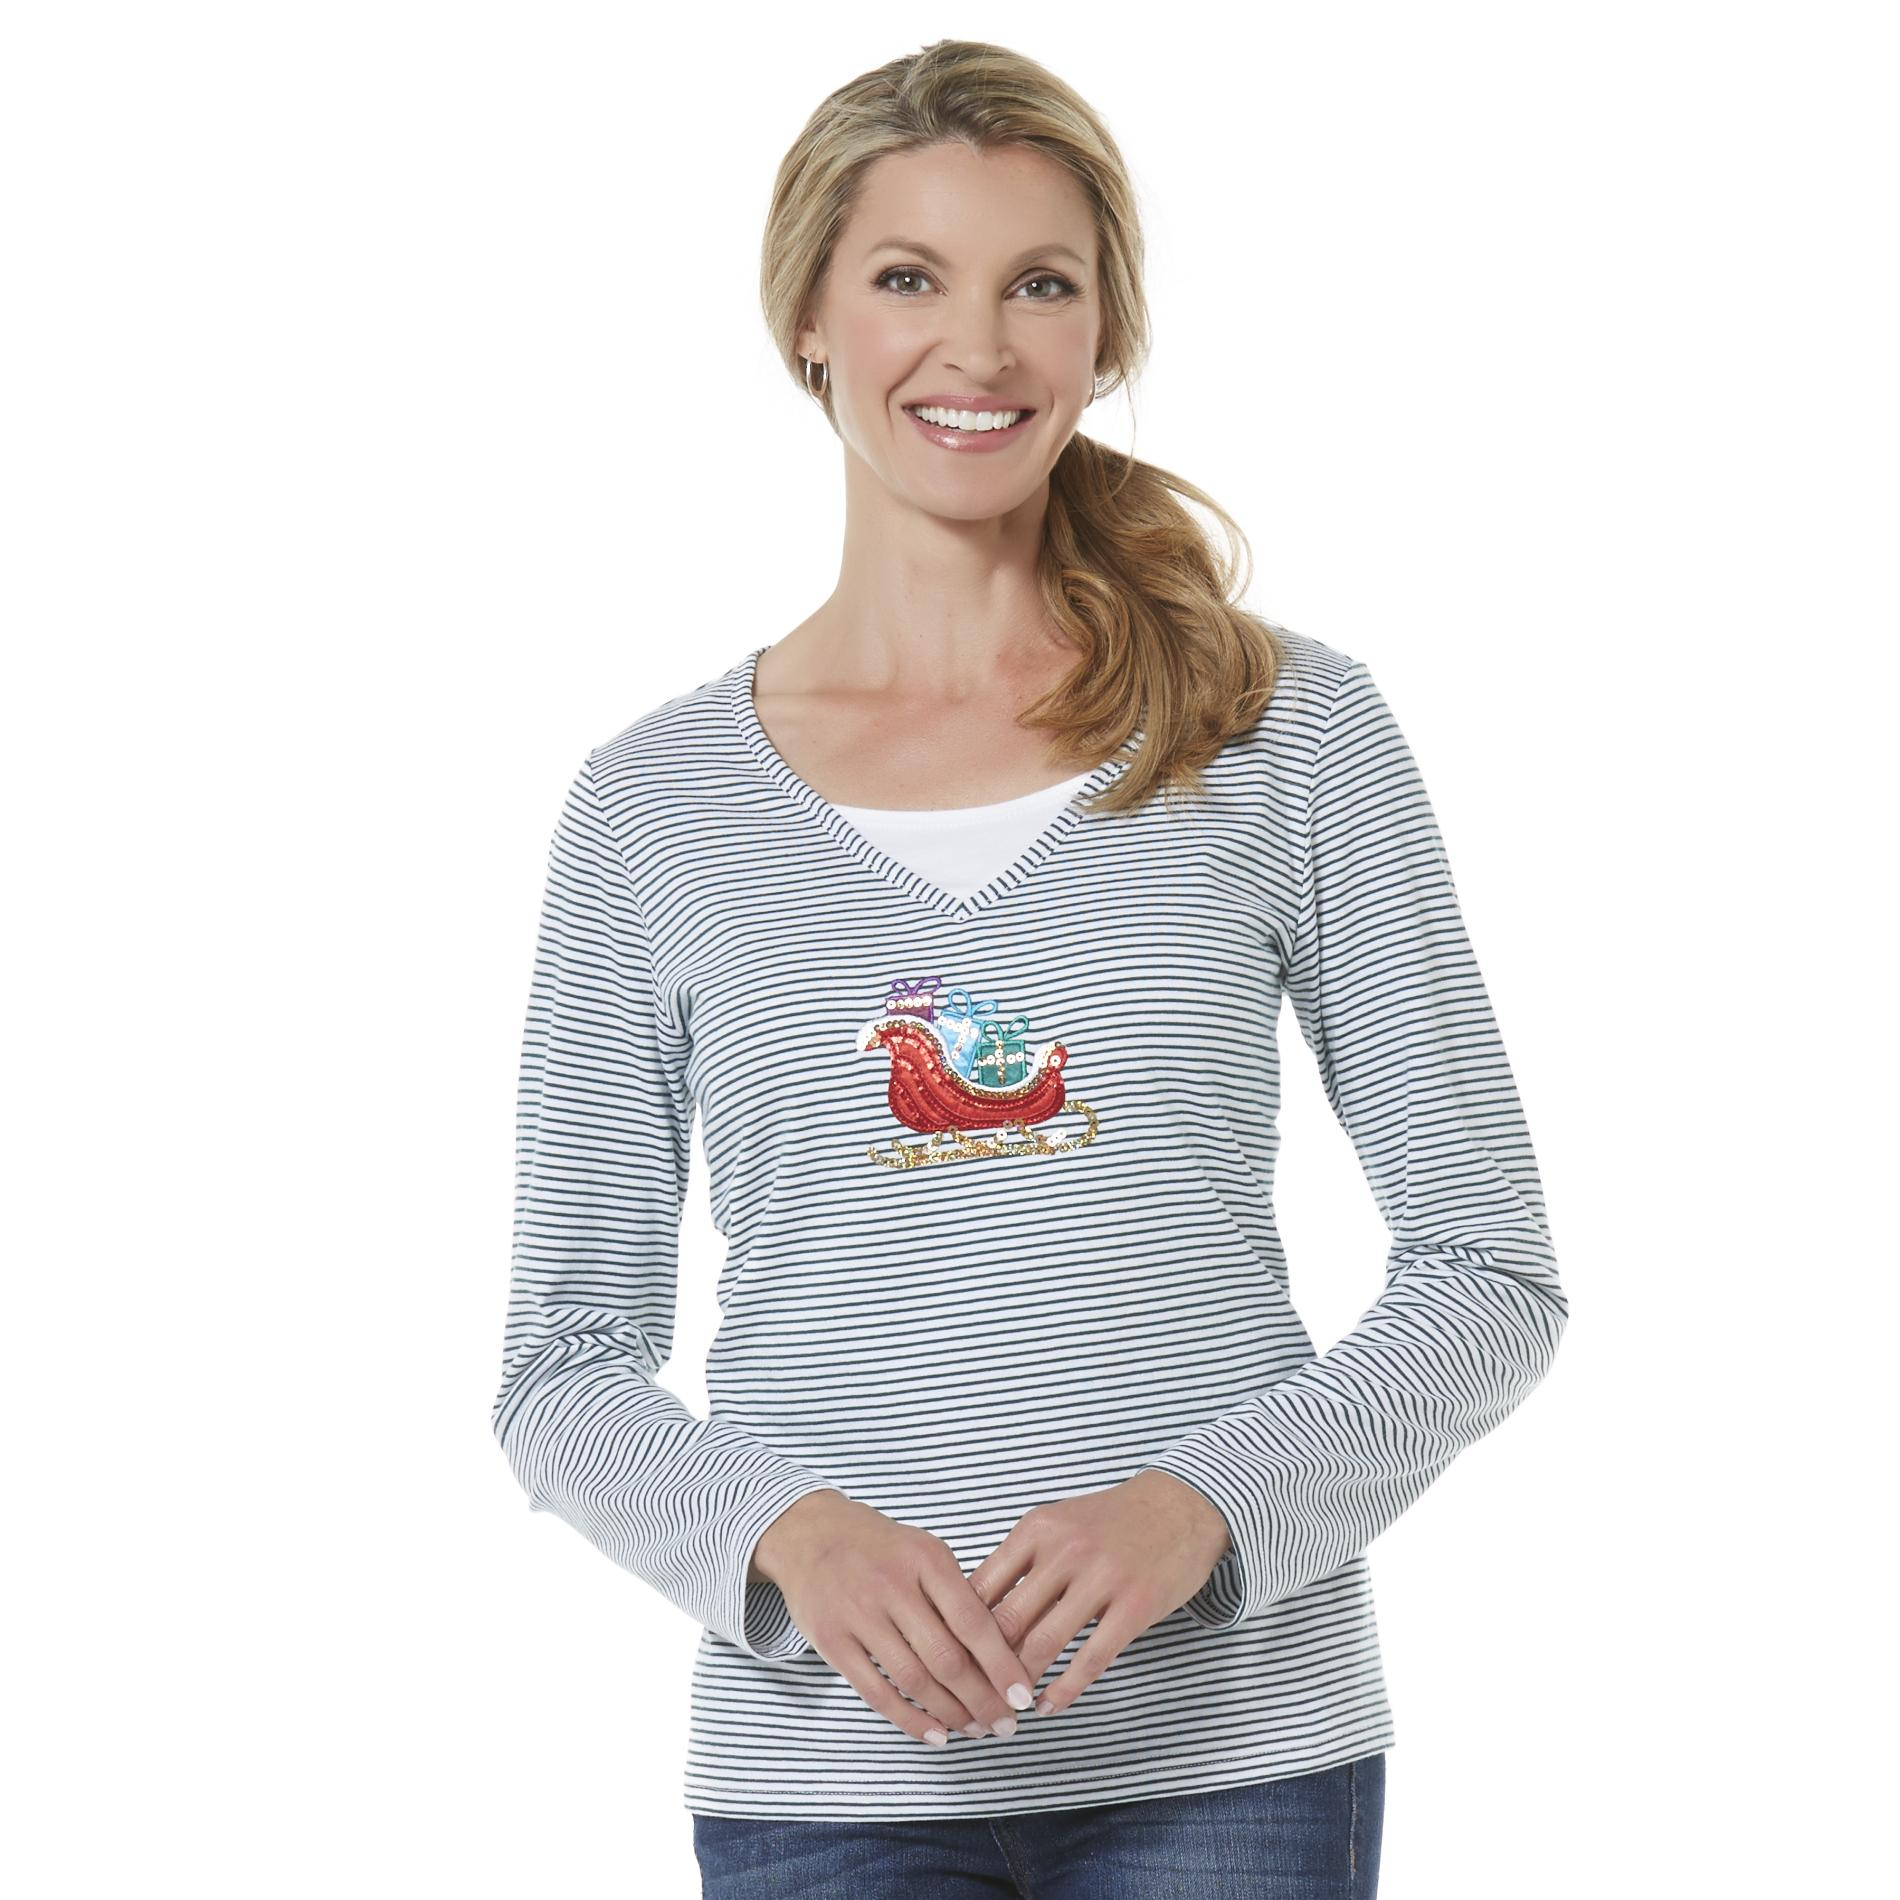 Holiday Editions Women's Embellished T-Shirt - Santa's Sleigh